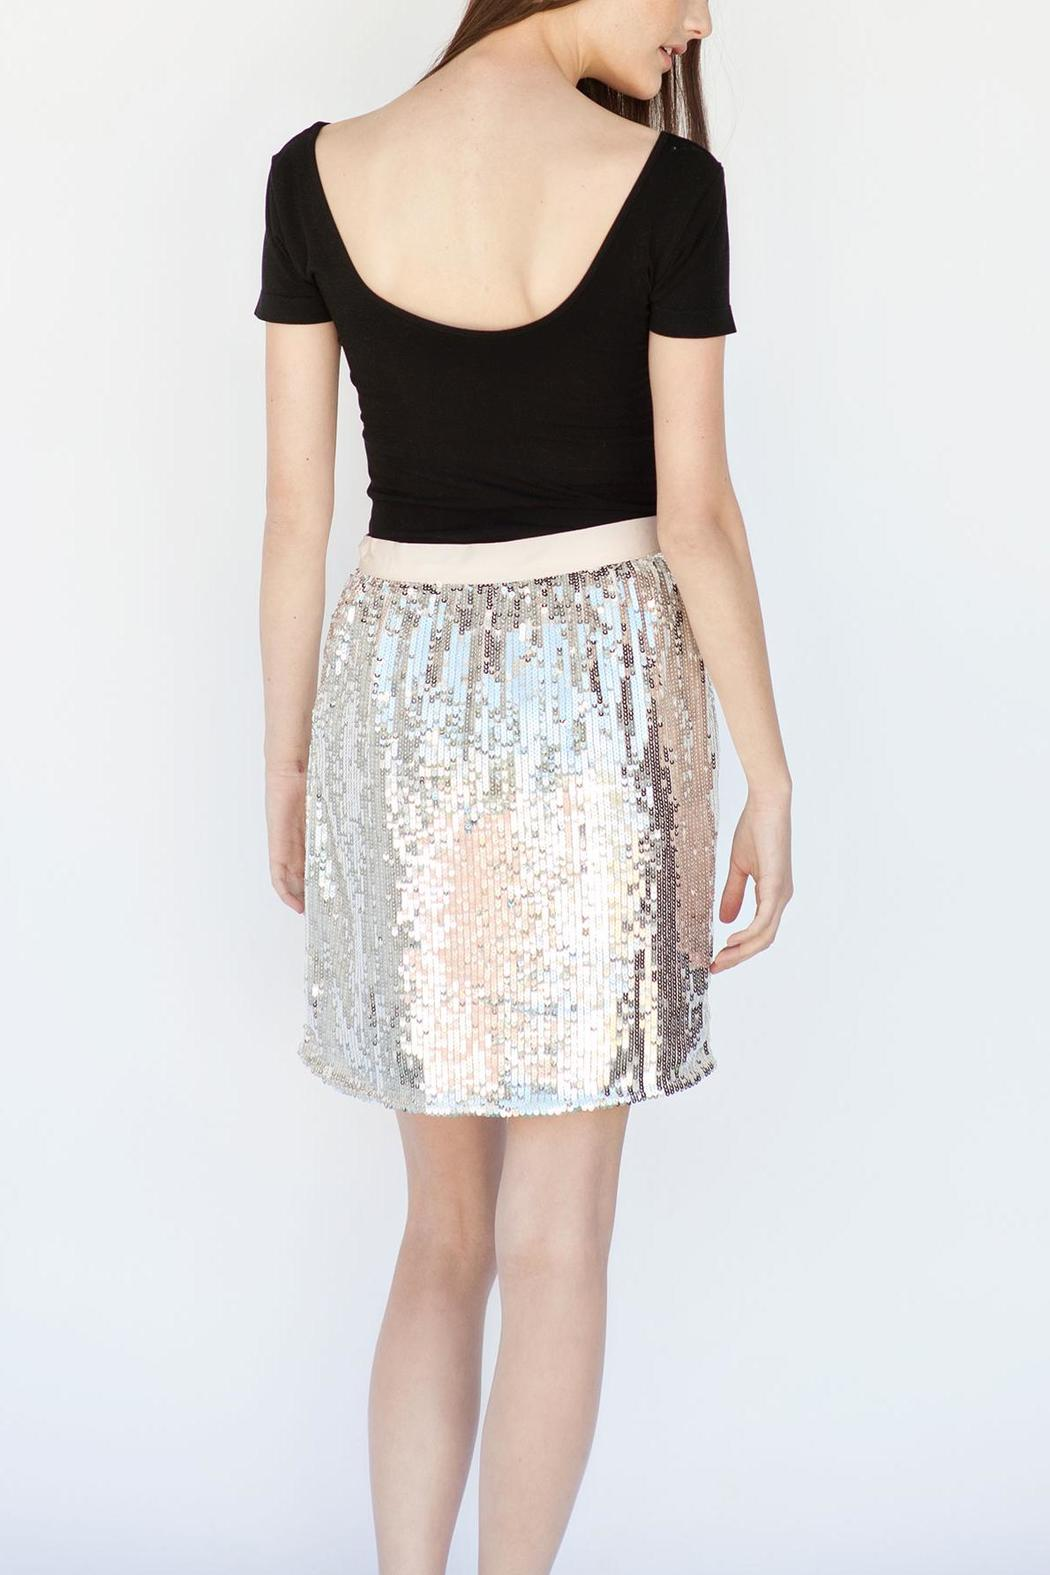 1dfe28e5ac Soaked in Luxury High-Waisted Sequin Skirt from Calgary by Adorn ...